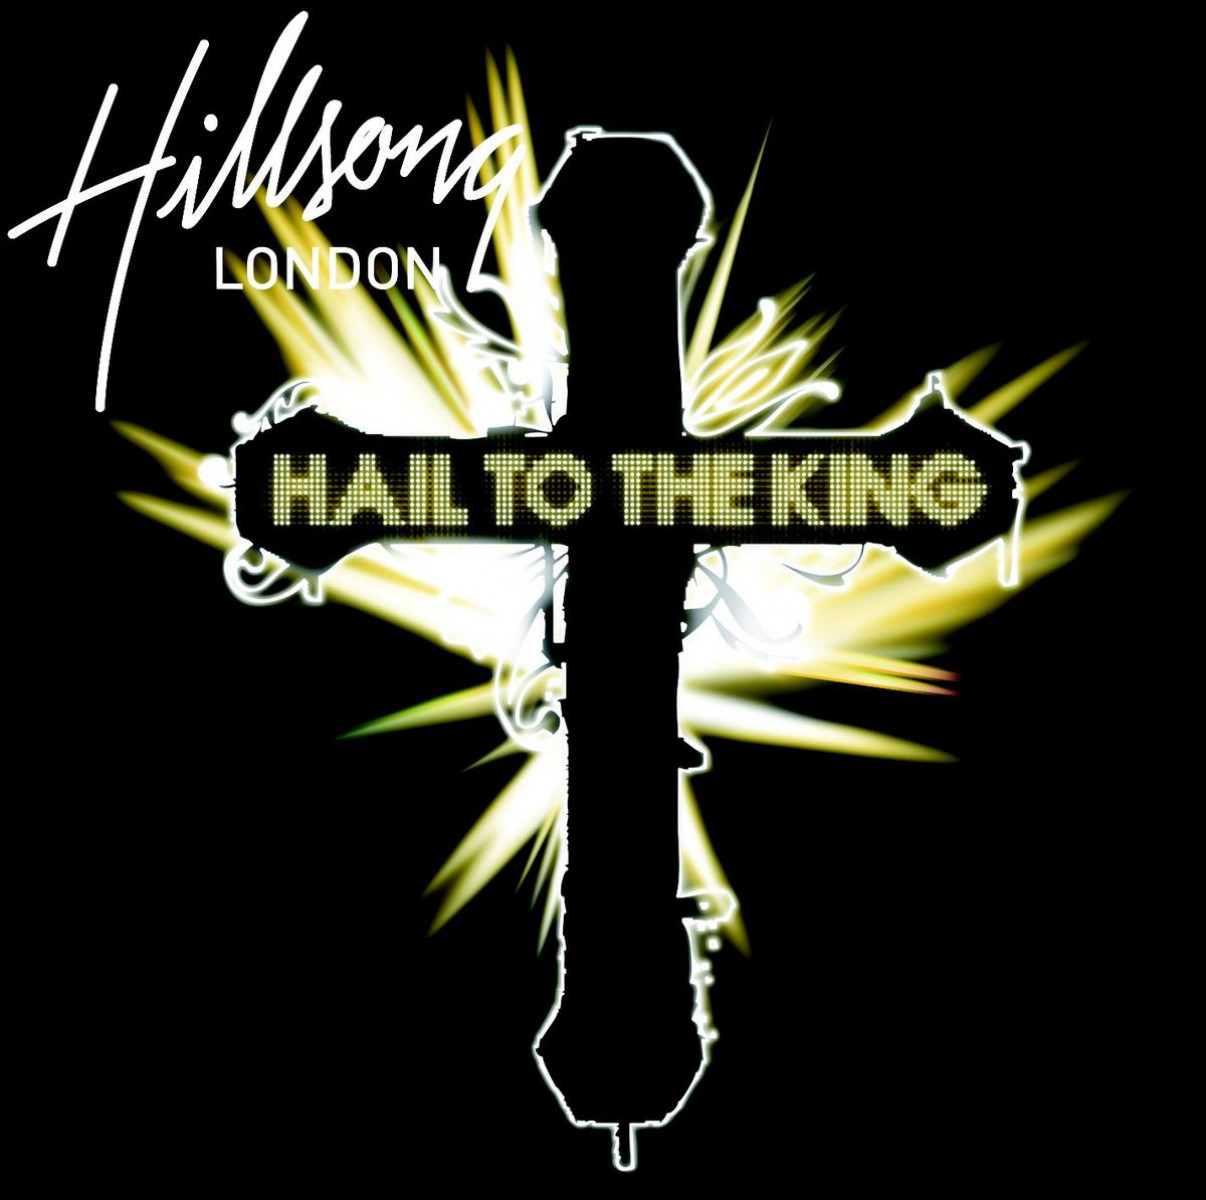 Hillsong London - Hail to the King CD - WHS/ACD  /219C/